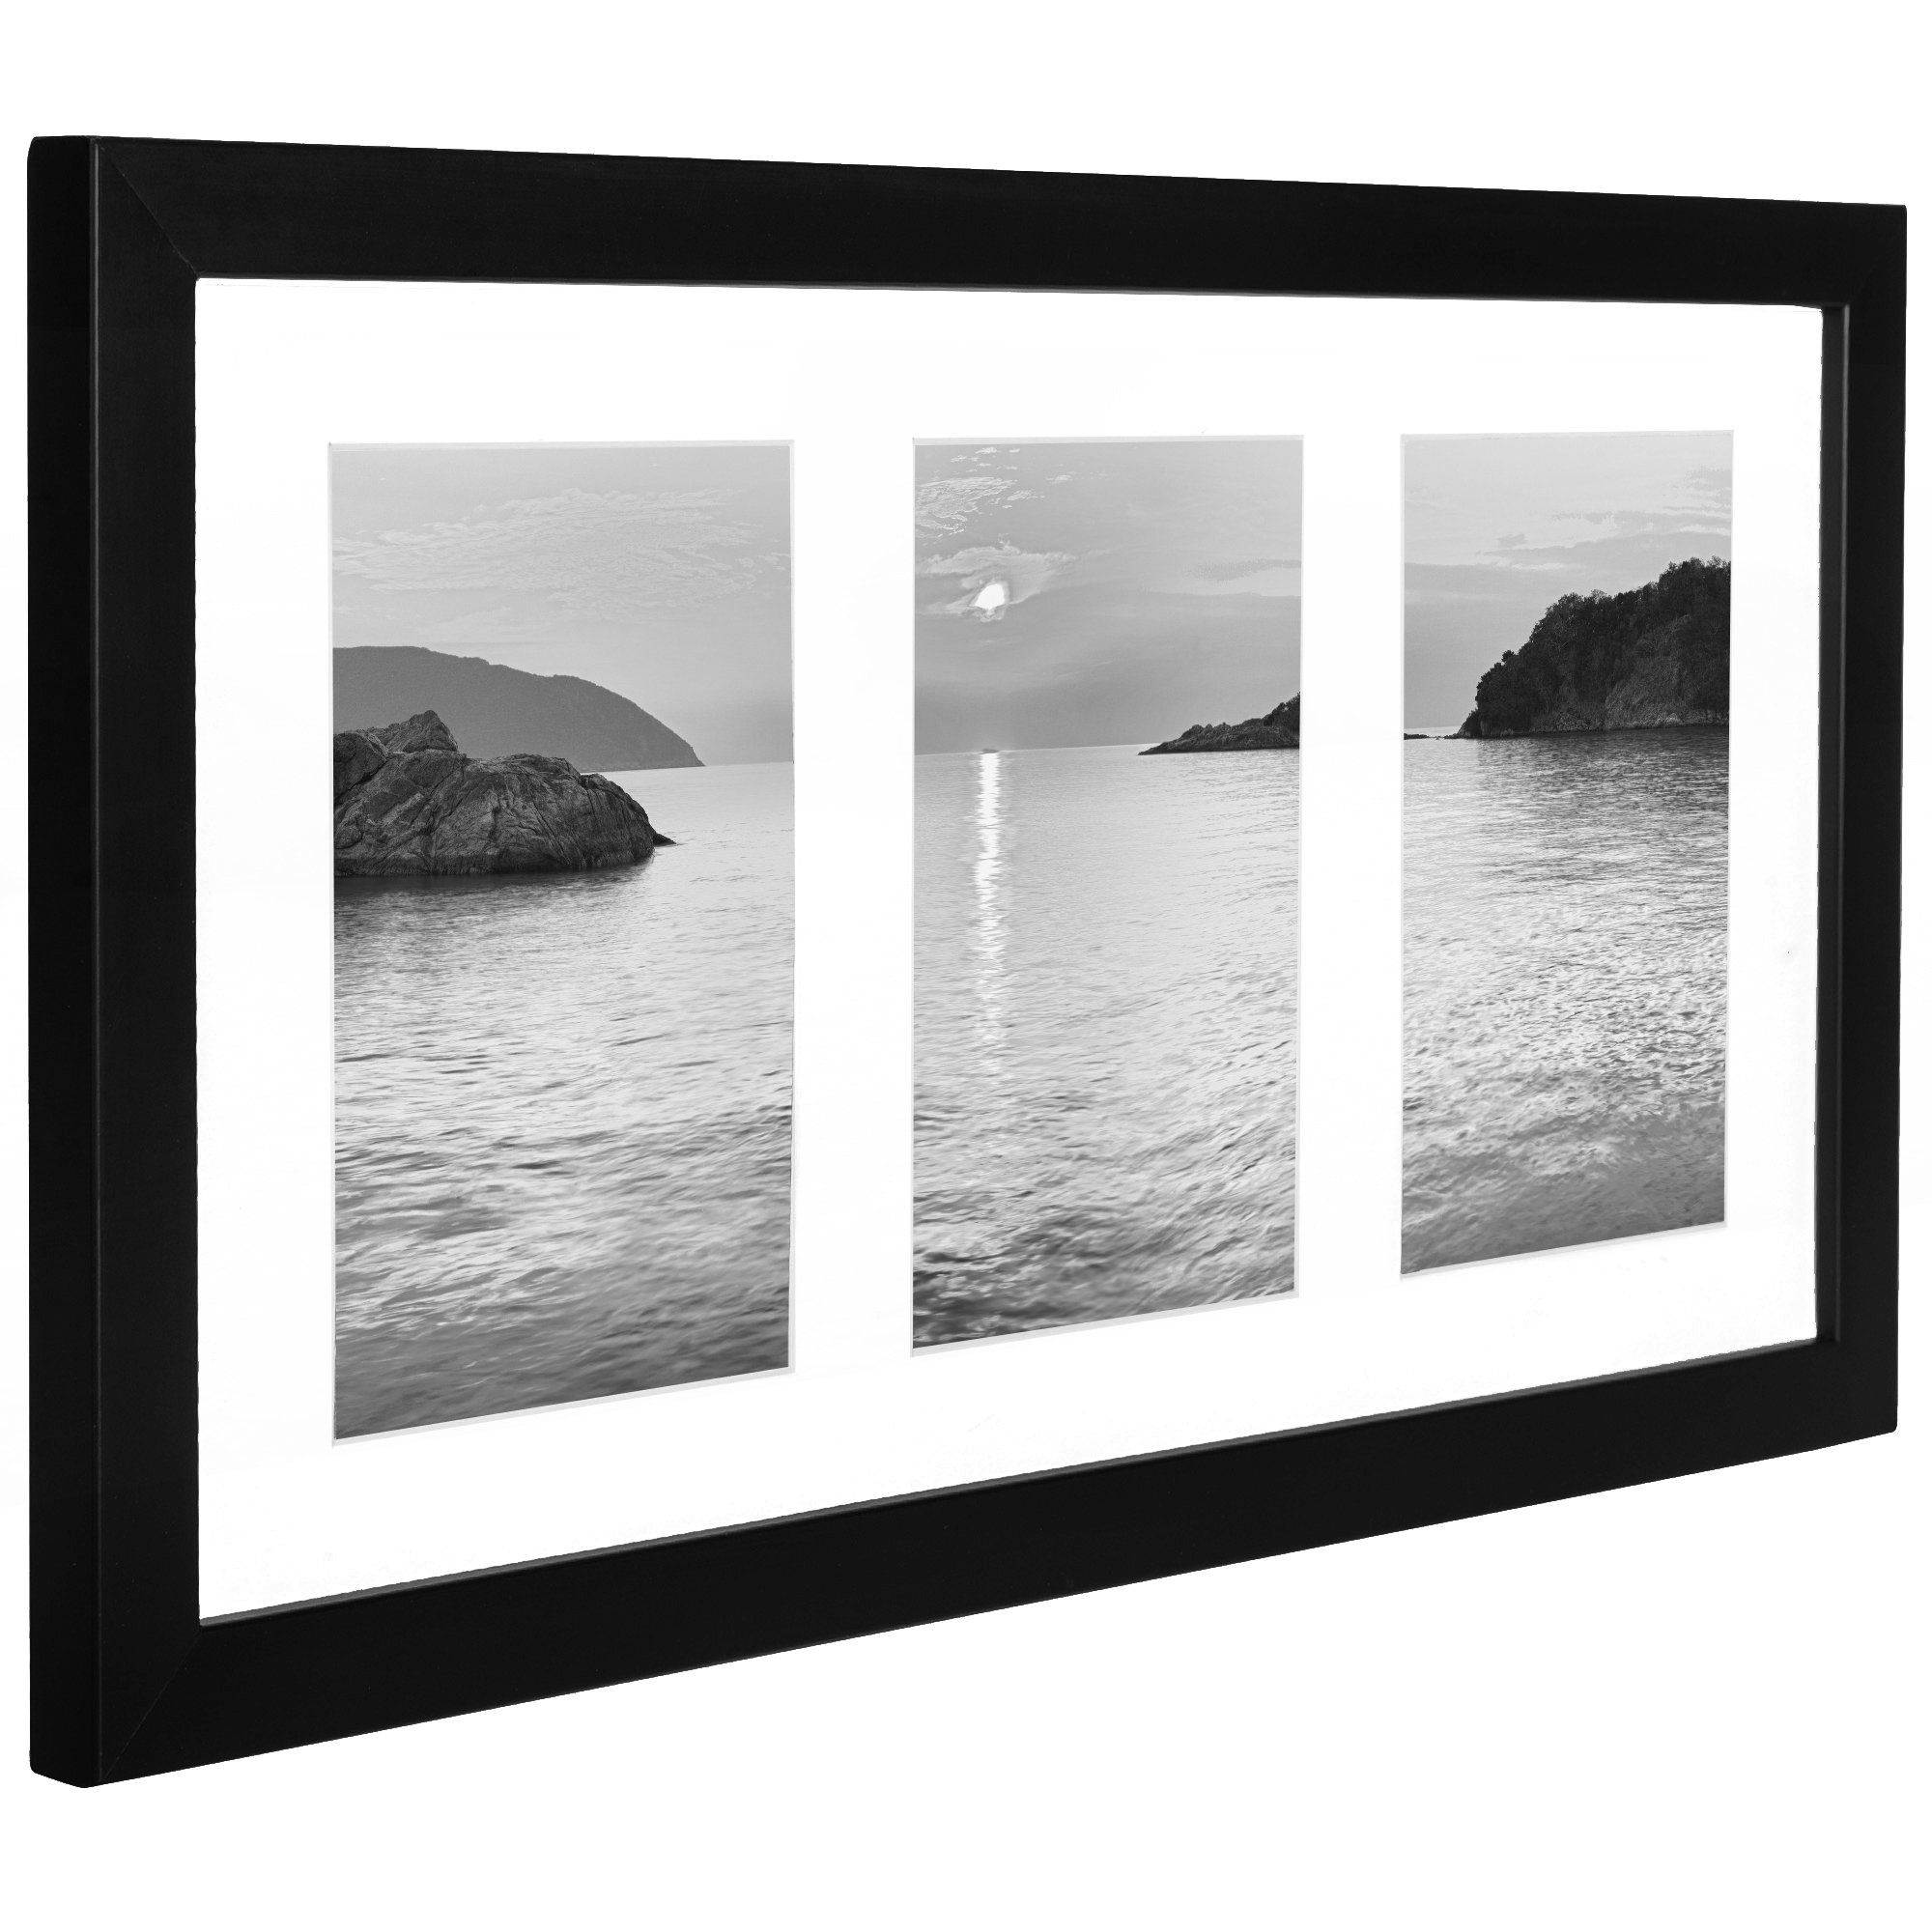 Collage Picture Frame 4x6 Displays Three 4x6 Inch Portrait Pictures Photo Collage Frame Perfect Fo Framed Photo Collage Picture Frame Display Picture Collage